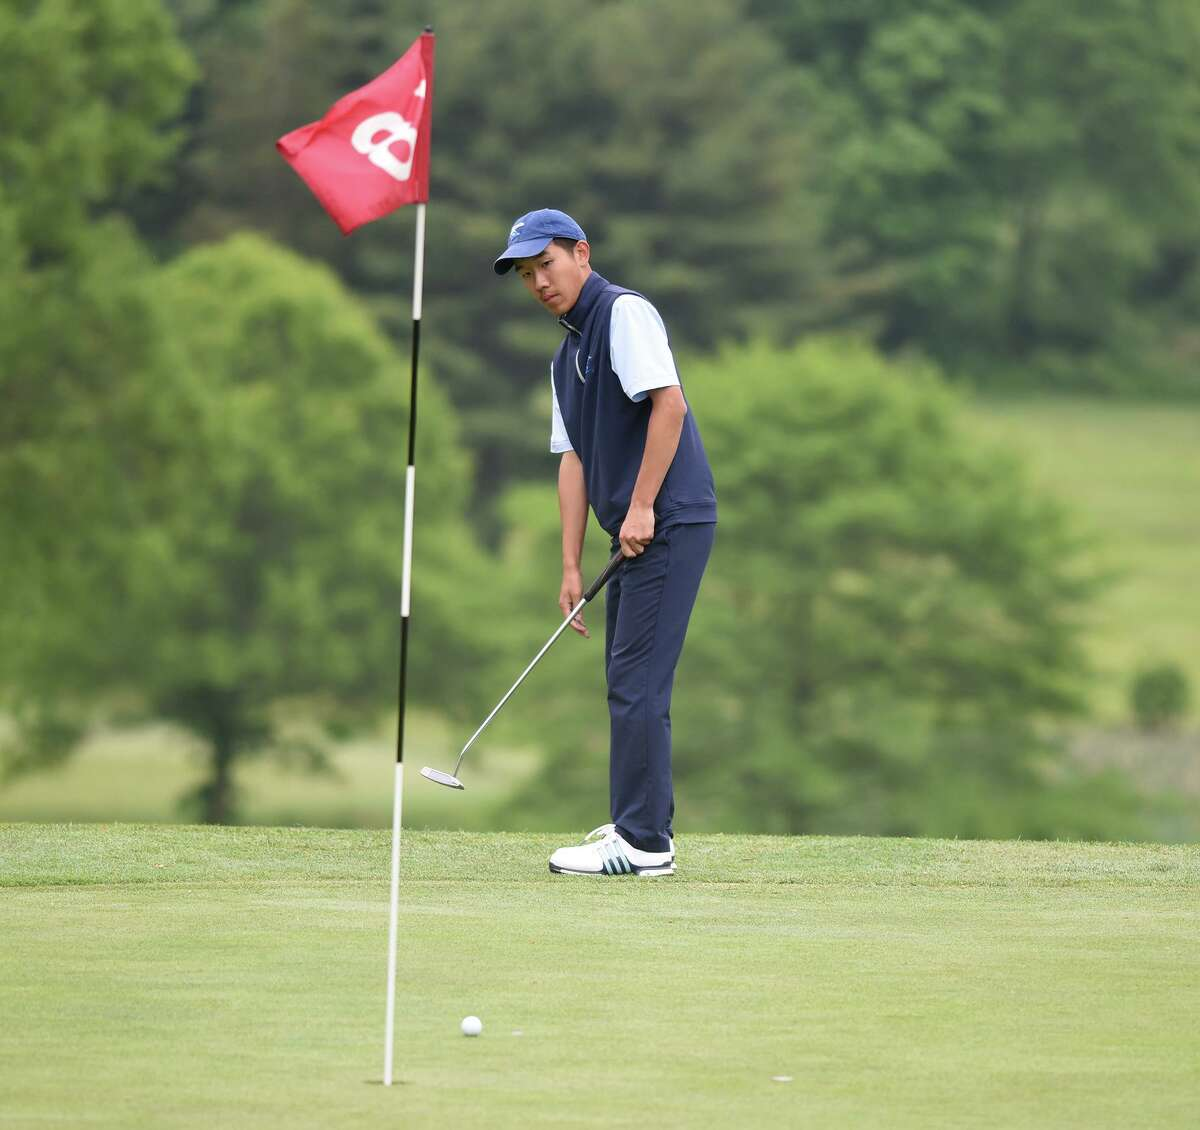 Darien's Alex Gu putts on the 18th green during the FCIAC boys golf championship at Fairchild Wheeler Golf Course in Fairfield on May 30.